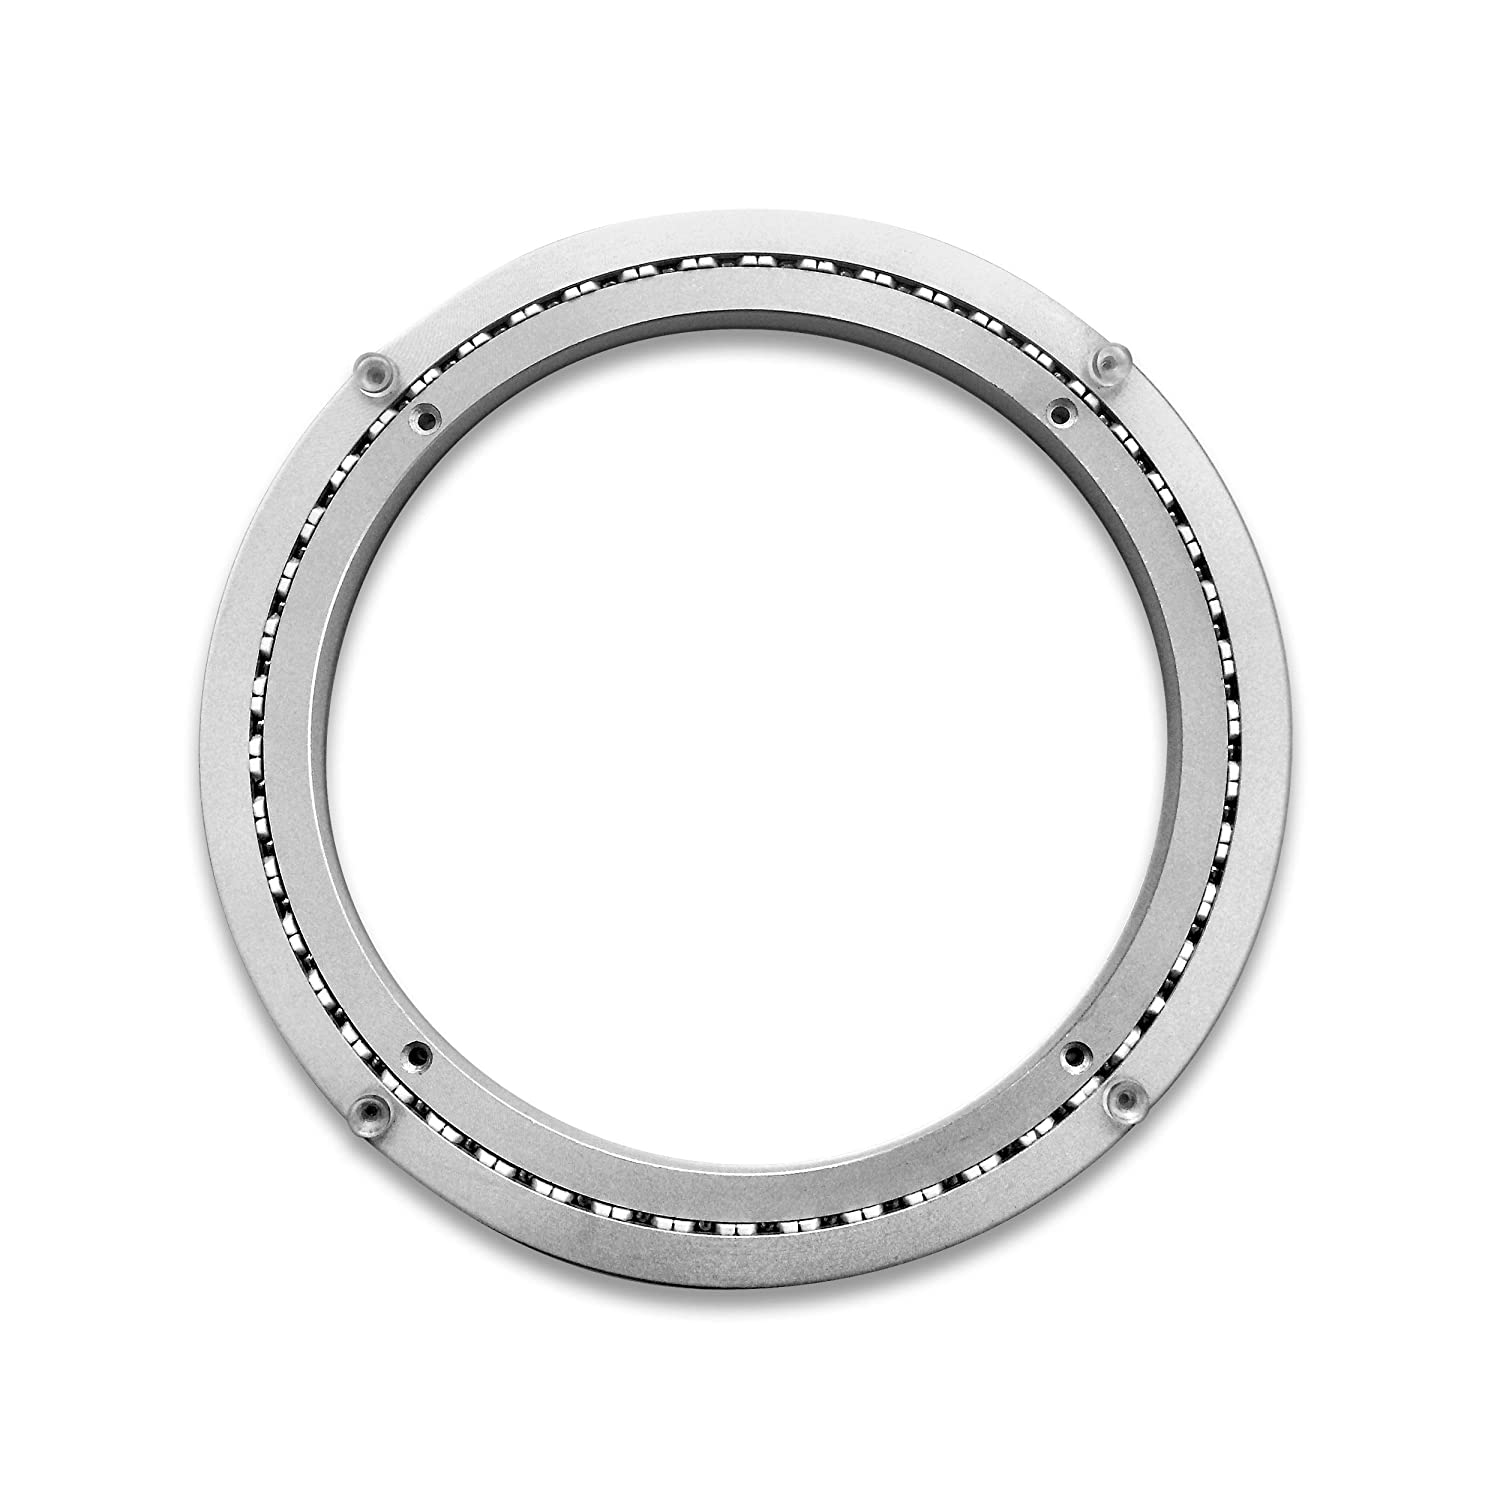 Heavy-Duty Aluminum Lazy Susan Ring/Turntable with Single-Row Ball Bearings for Heavy Loads, 12-Inch